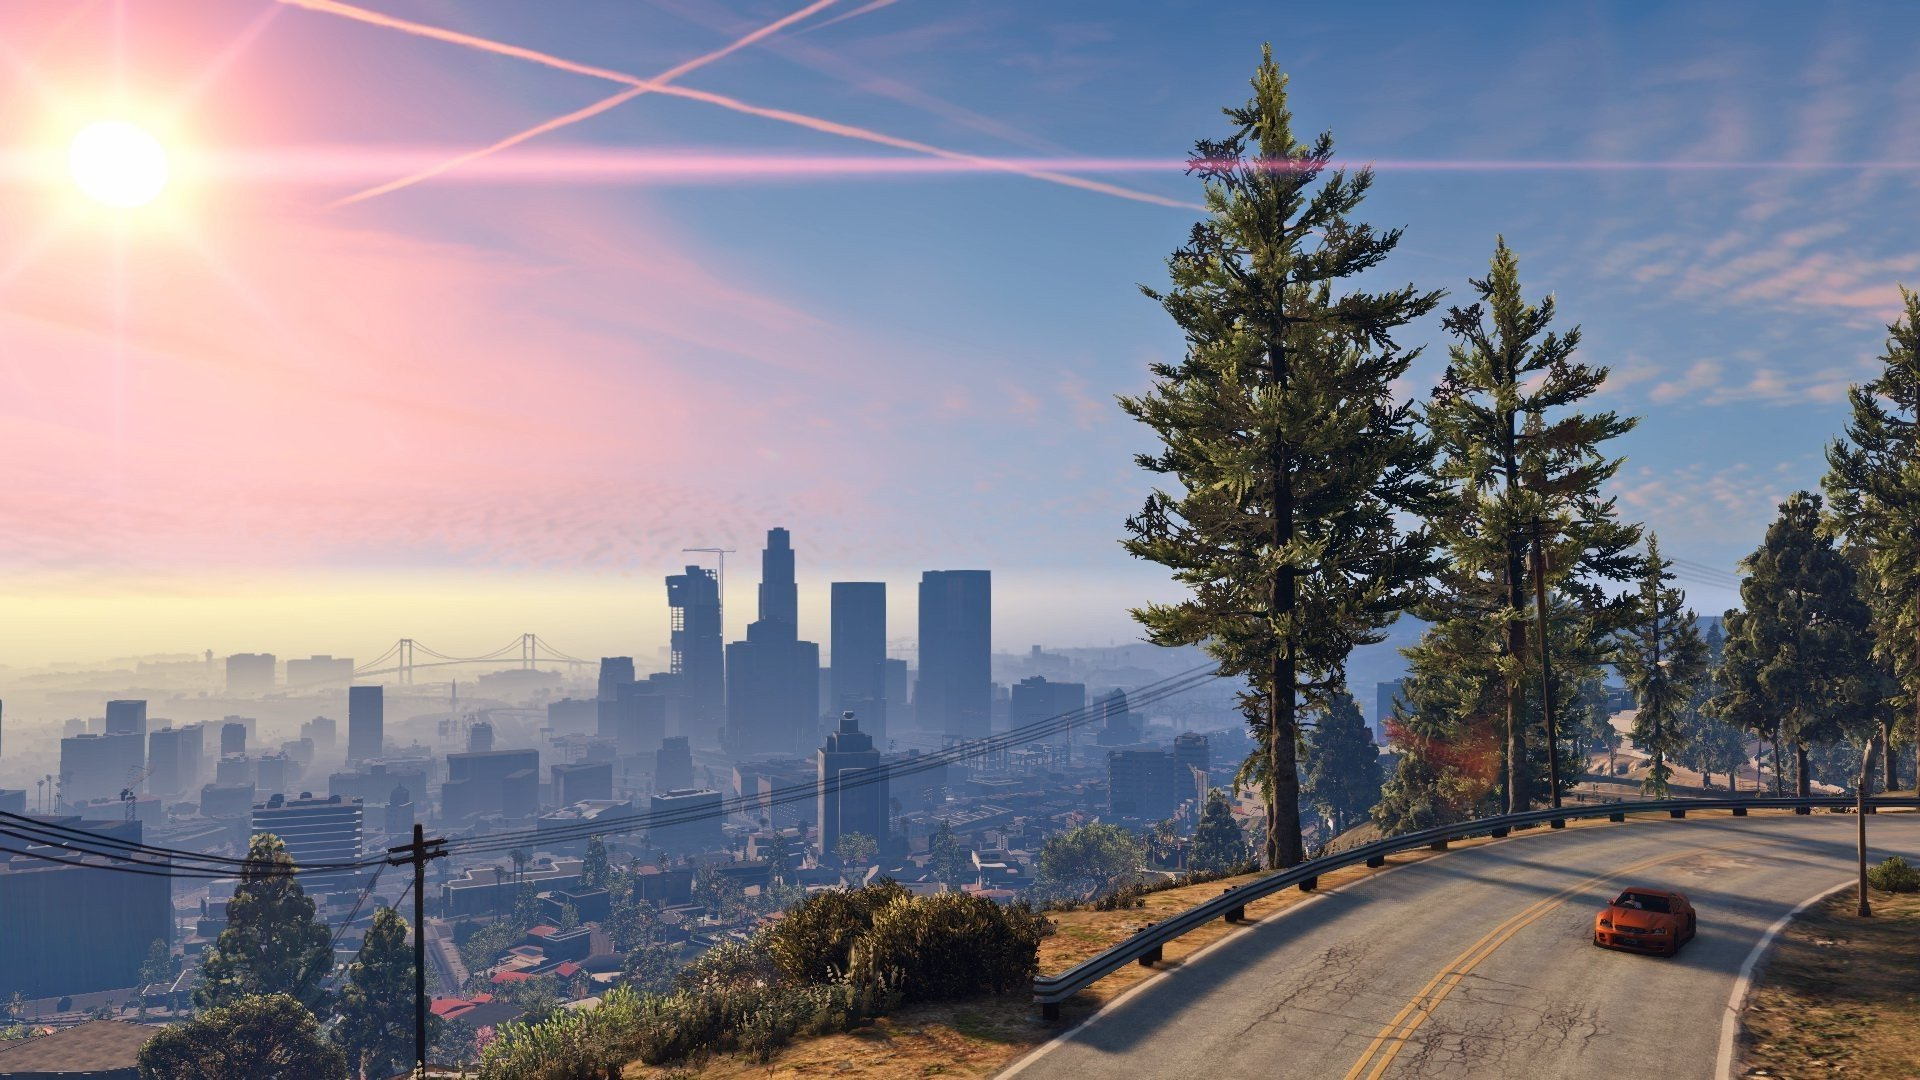 Grand Theft Auto V Lossantos Wallpapers HD Desktop and Mobile 1920x1080